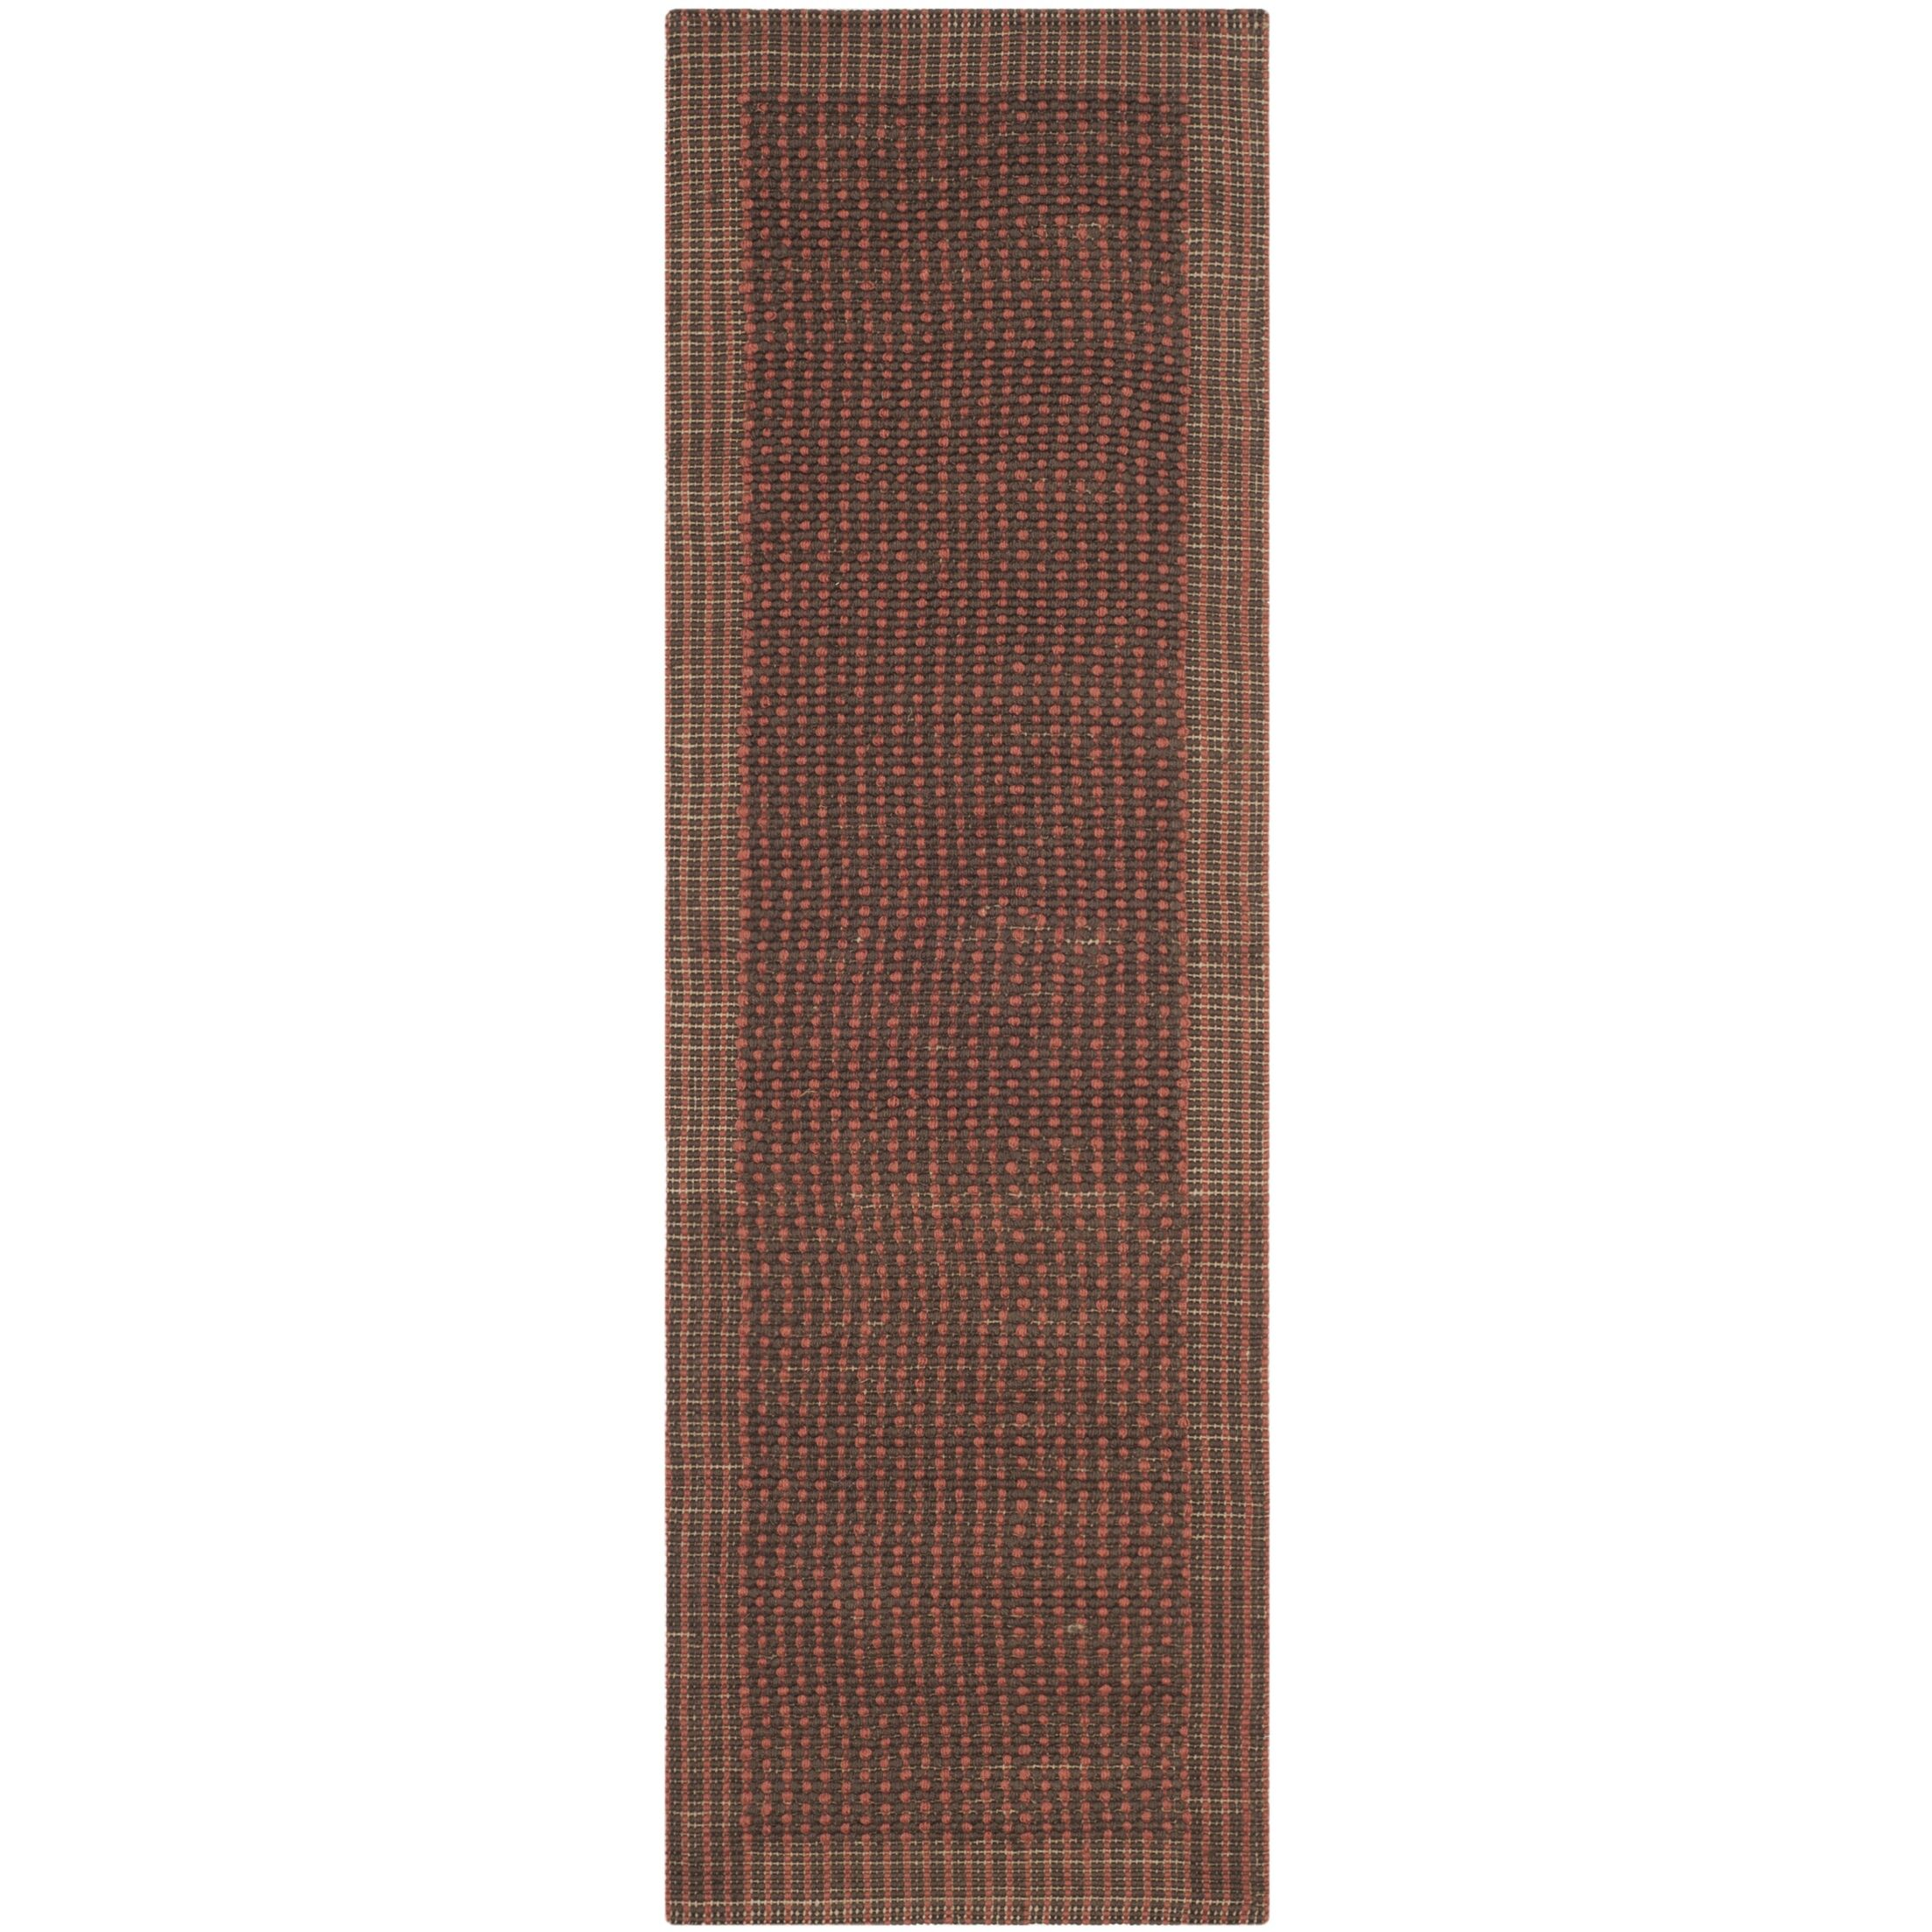 Greene Contemporary Brown/Rust Area Rug Rug Size: Rectangle 4' x 6'